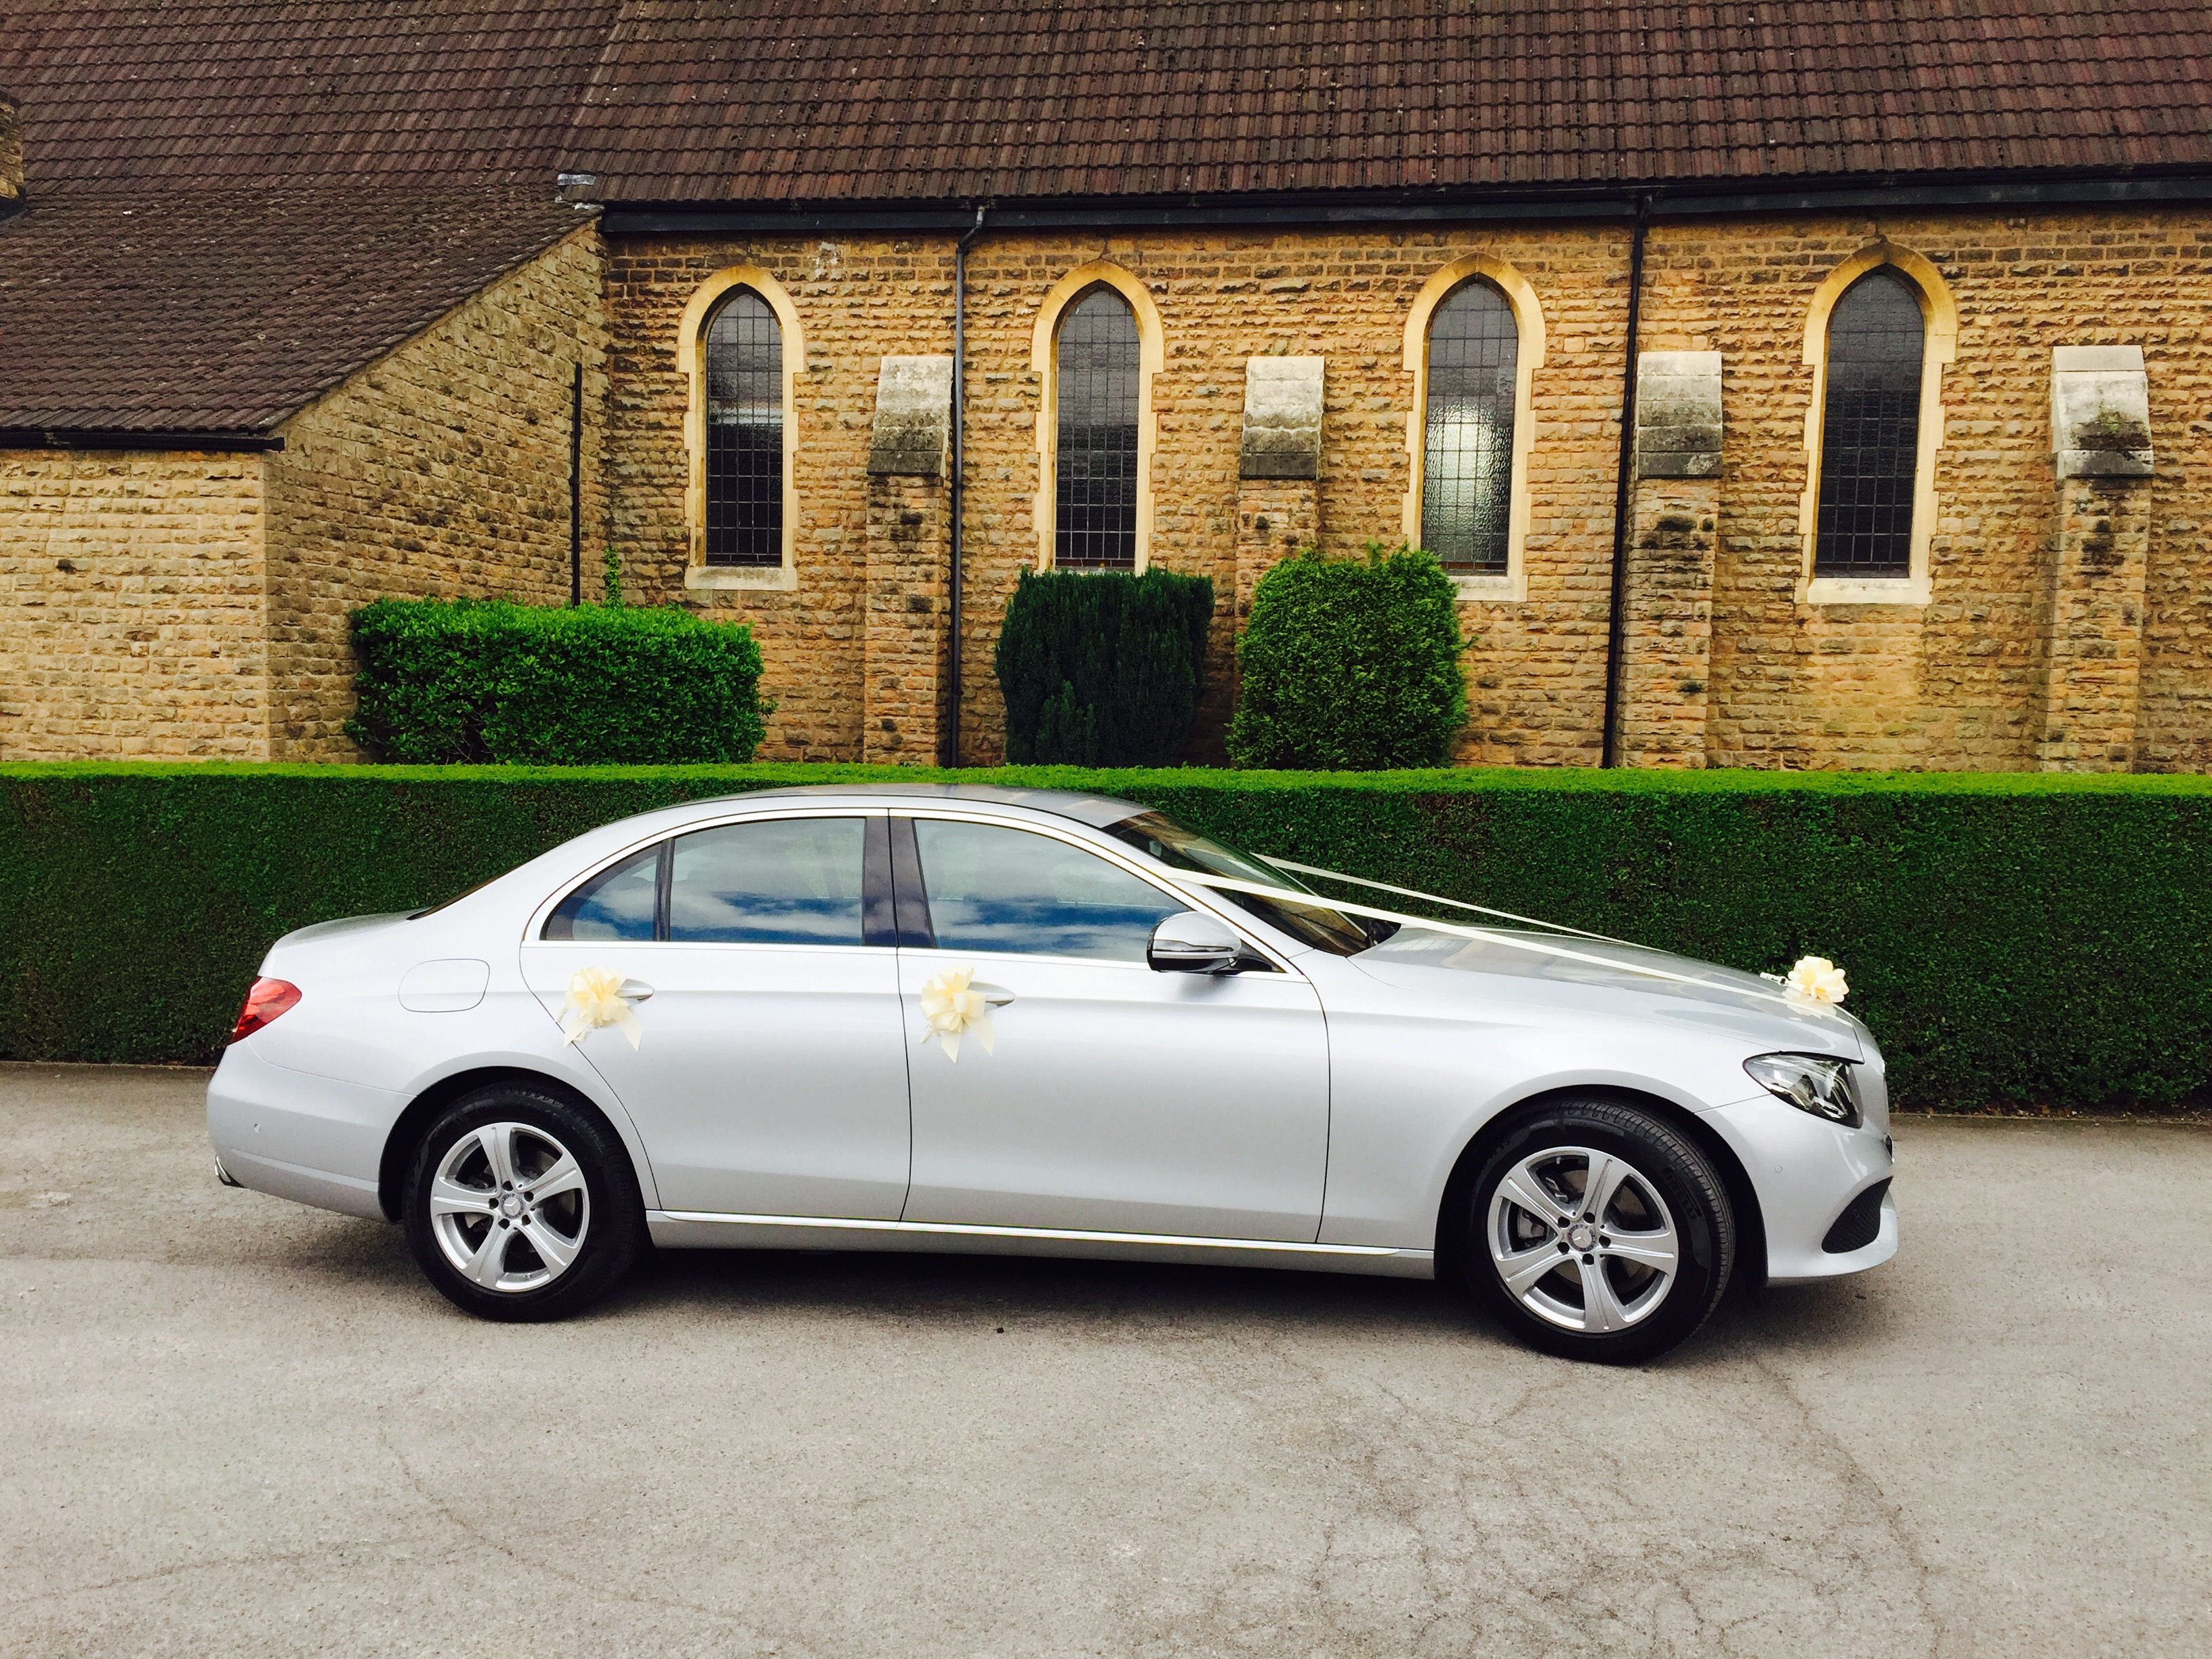 IDEAL CARS – WEDDINGS & SPECIAL OCCASIONS | Ideal Cars - Nottingham